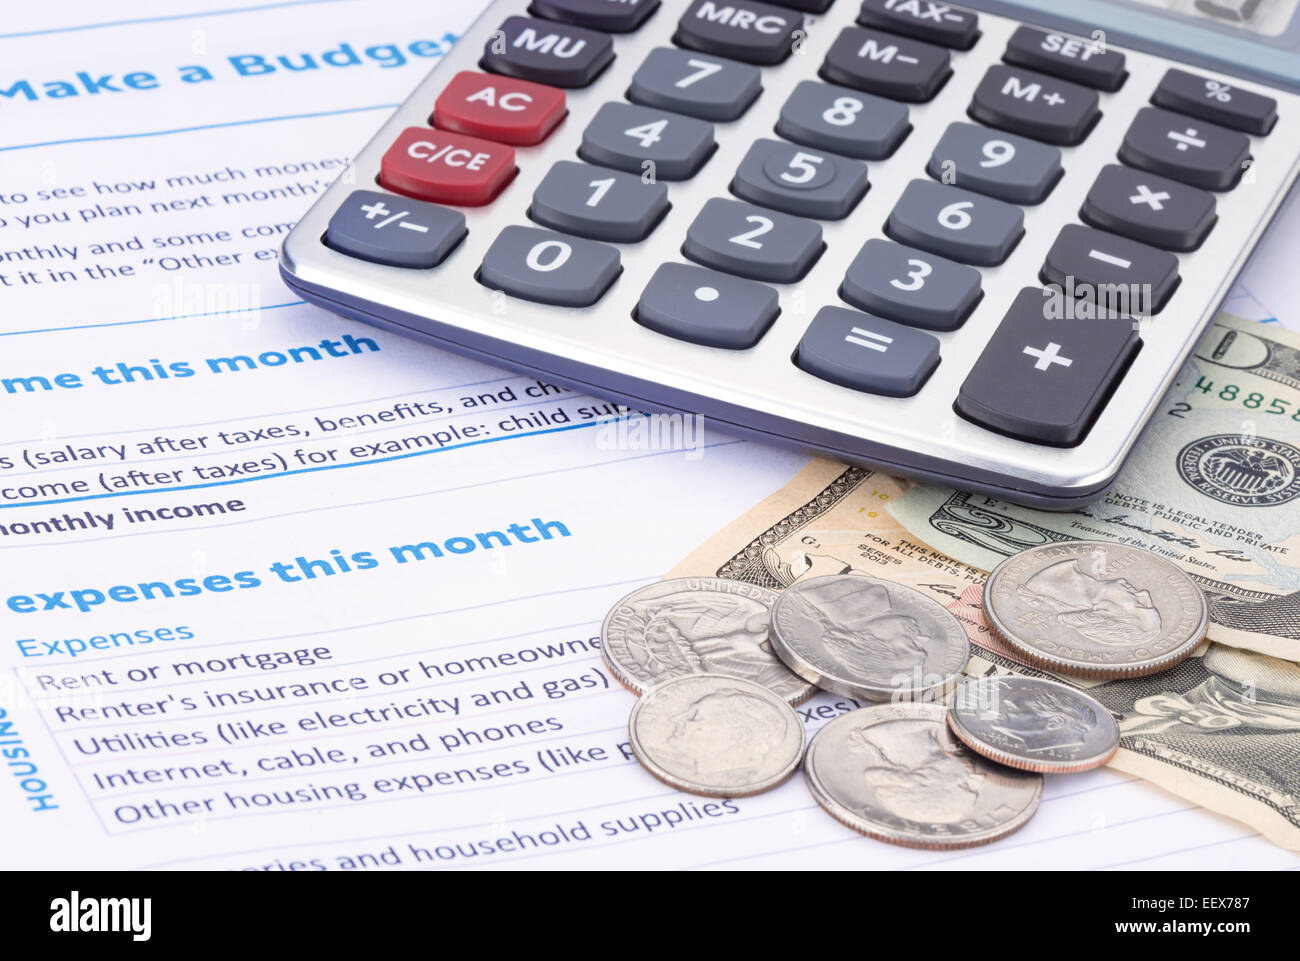 Budget Household Stock Photos Amp Budget Household Stock Images